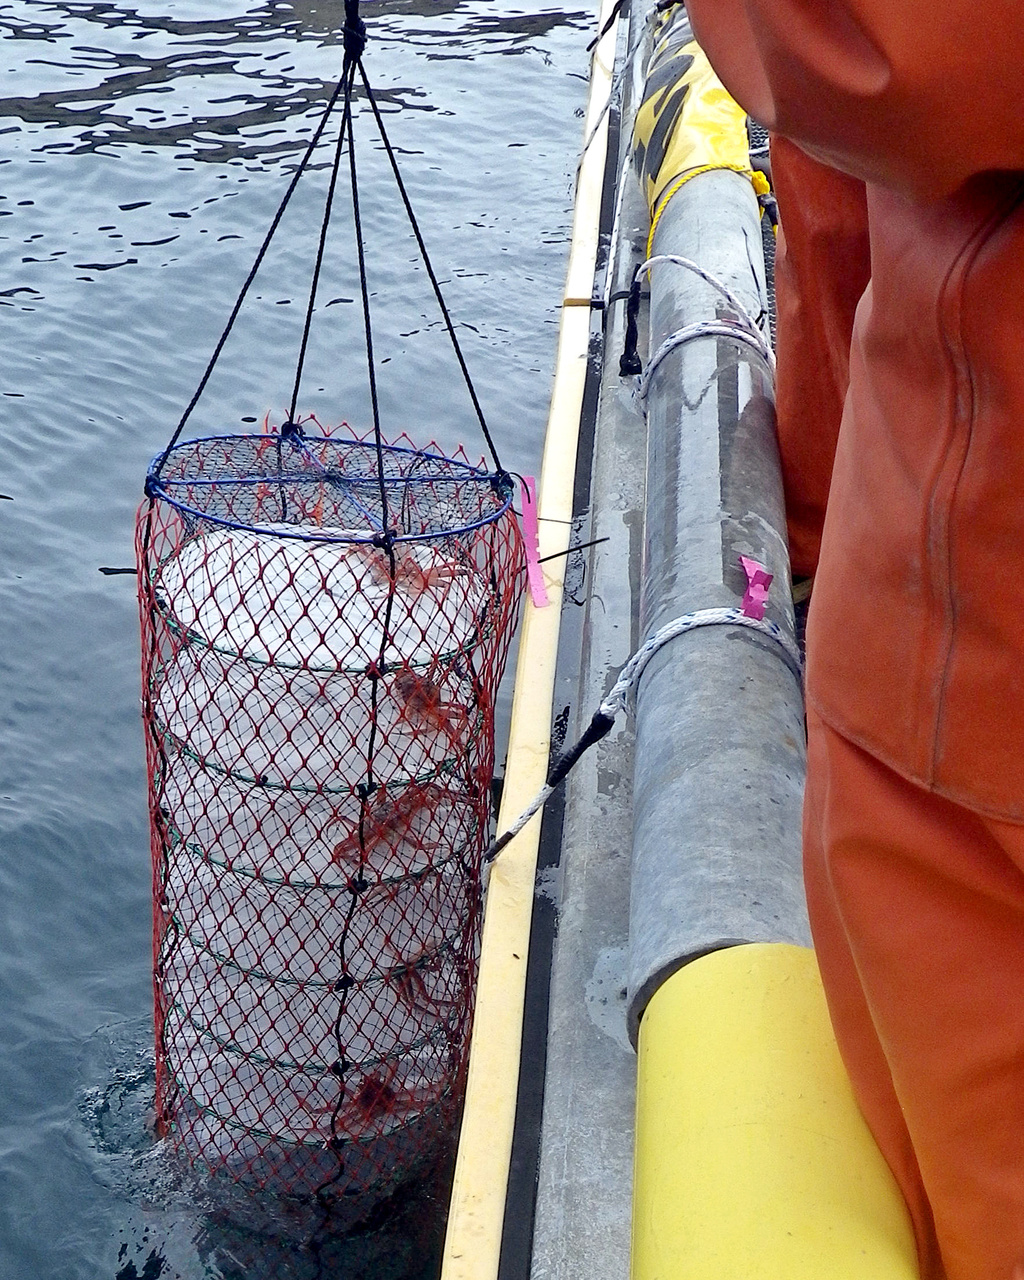 We retrieve the lantern nets daily and each crab is checked to see if it has molted (shed its shell). We modified the lantern nets by attaching sheets of plastic to each compartment to act as flooring, providing a surface for the crabs to push against as they molt. We allow the shells of newly molted crabs to harden before we measure the new size. There are no new shell crab in this lantern net today.